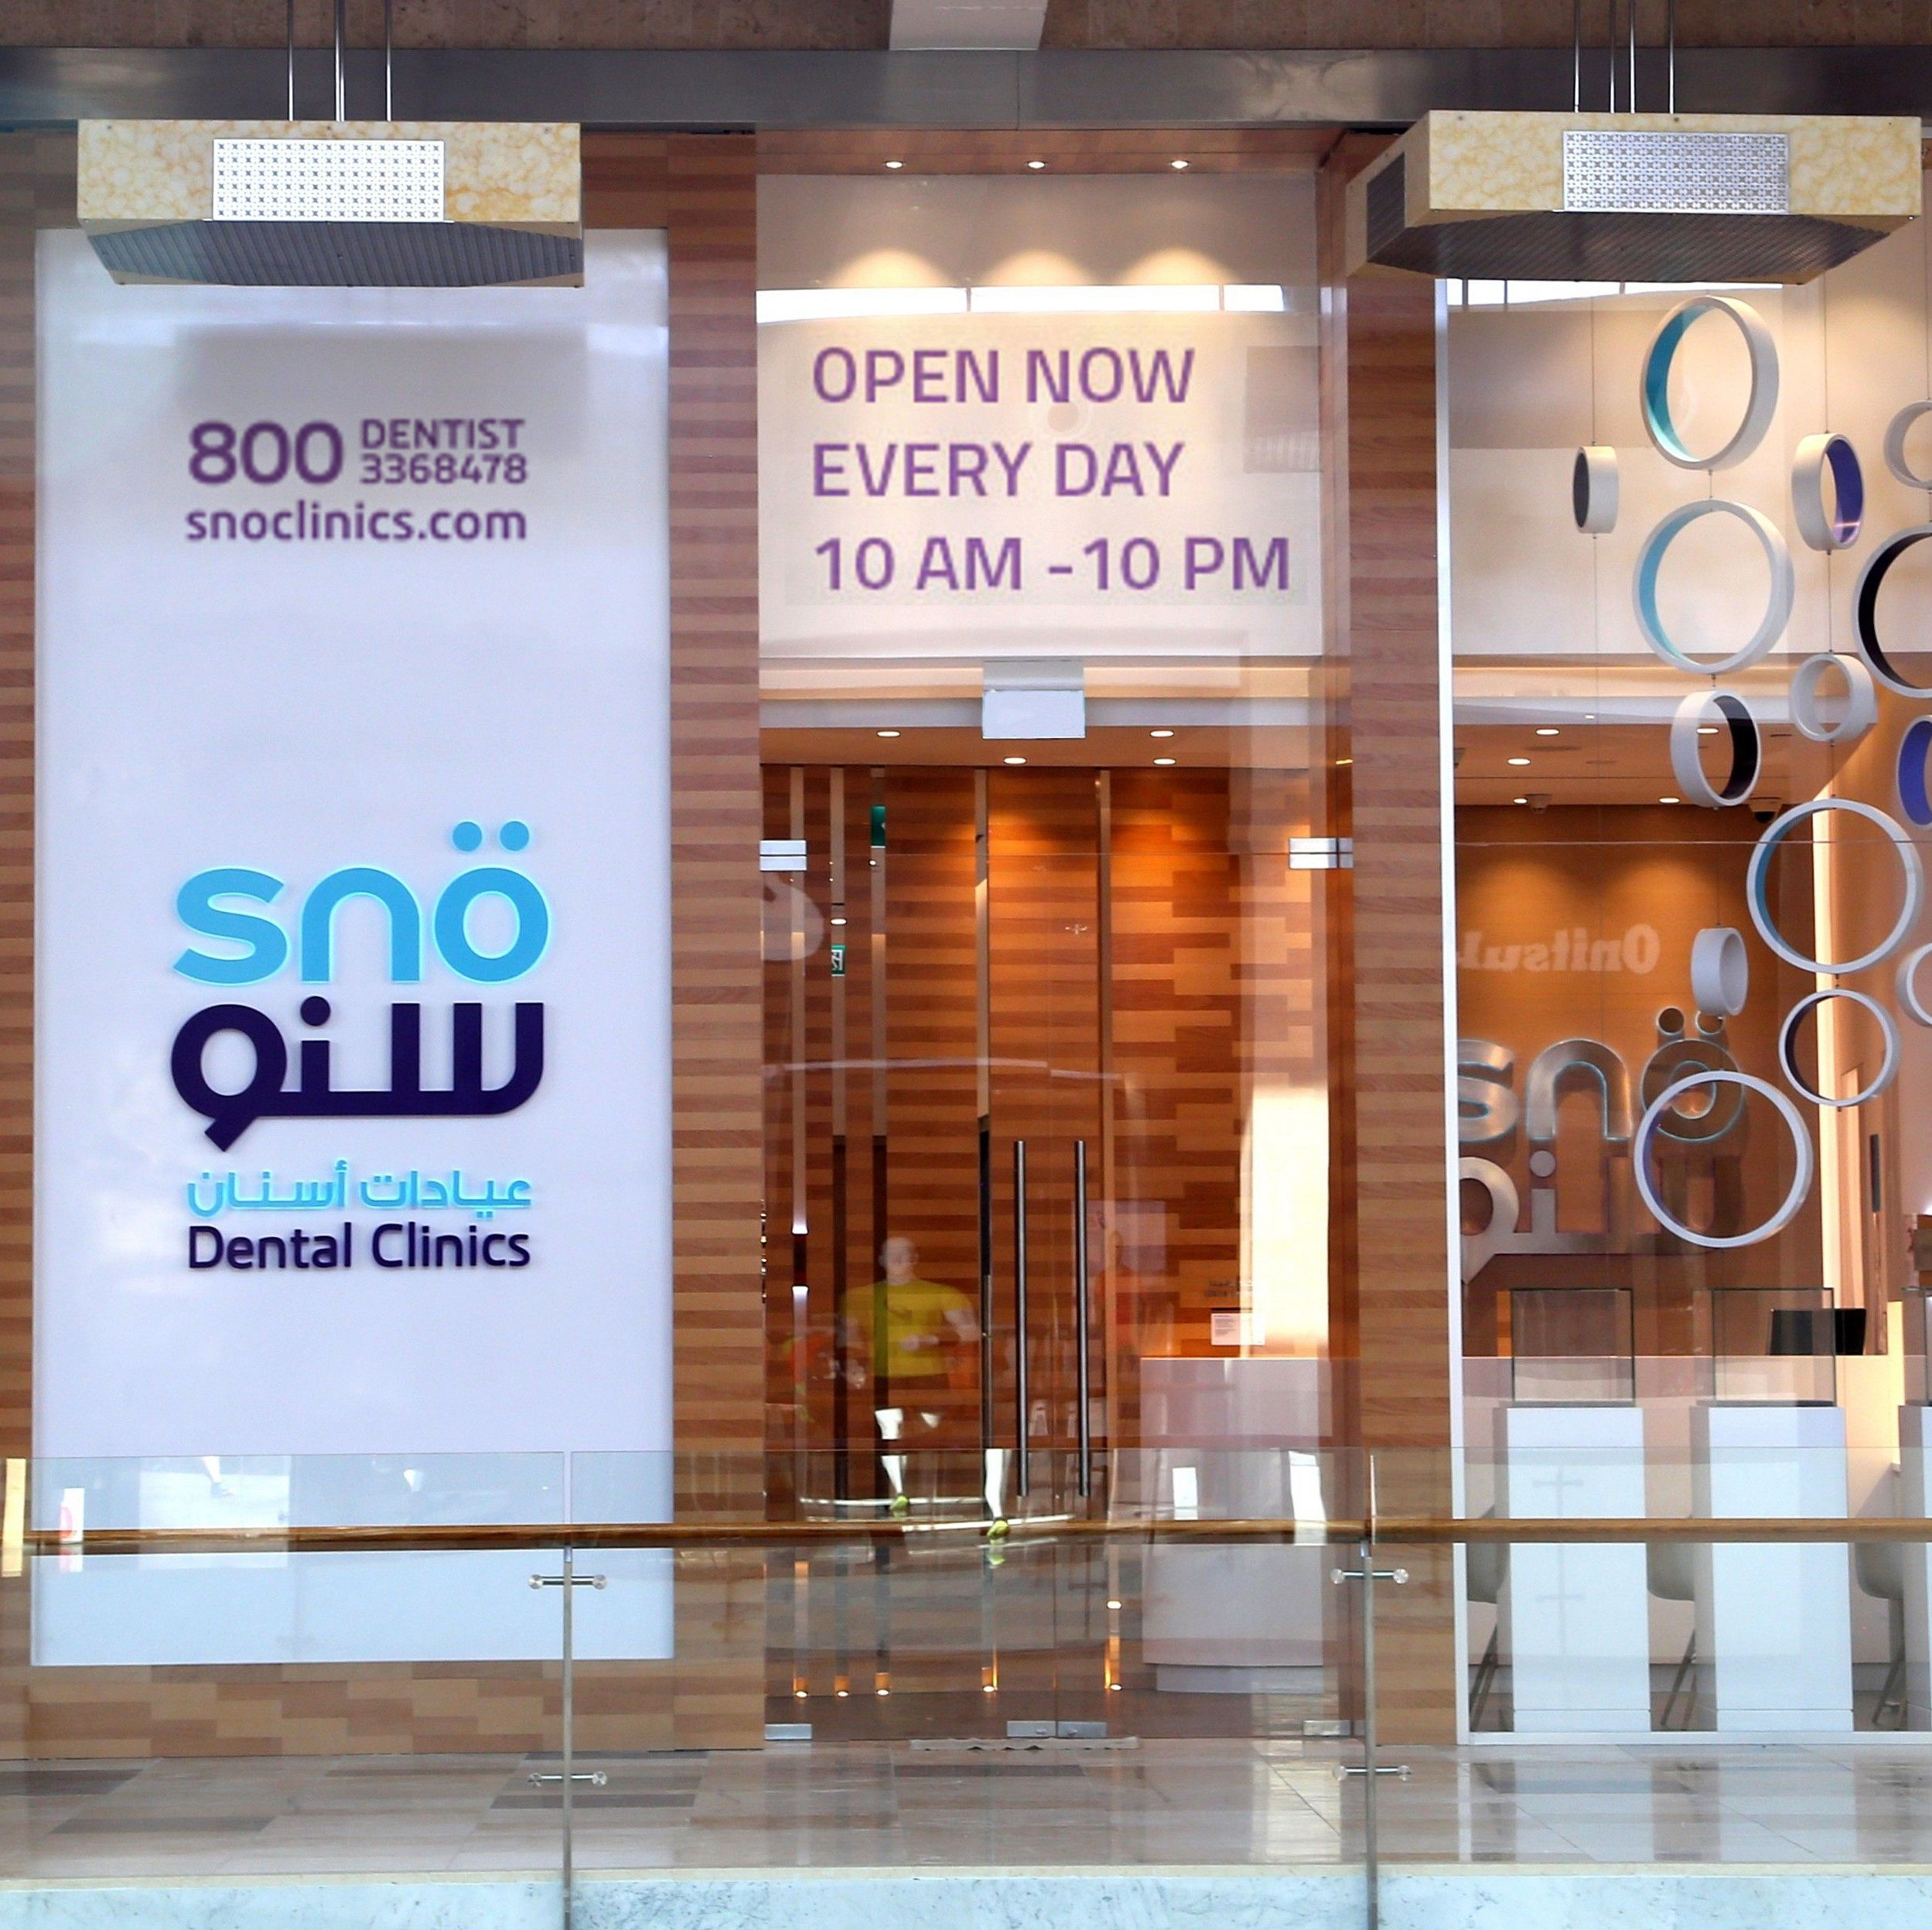 Certainly the most beautiful dental clinic in town come and see certainly the most beautiful dental clinic in town come and see yourself every day between 10am and 10pm at yas mall call 800 dentist to book an solutioingenieria Images